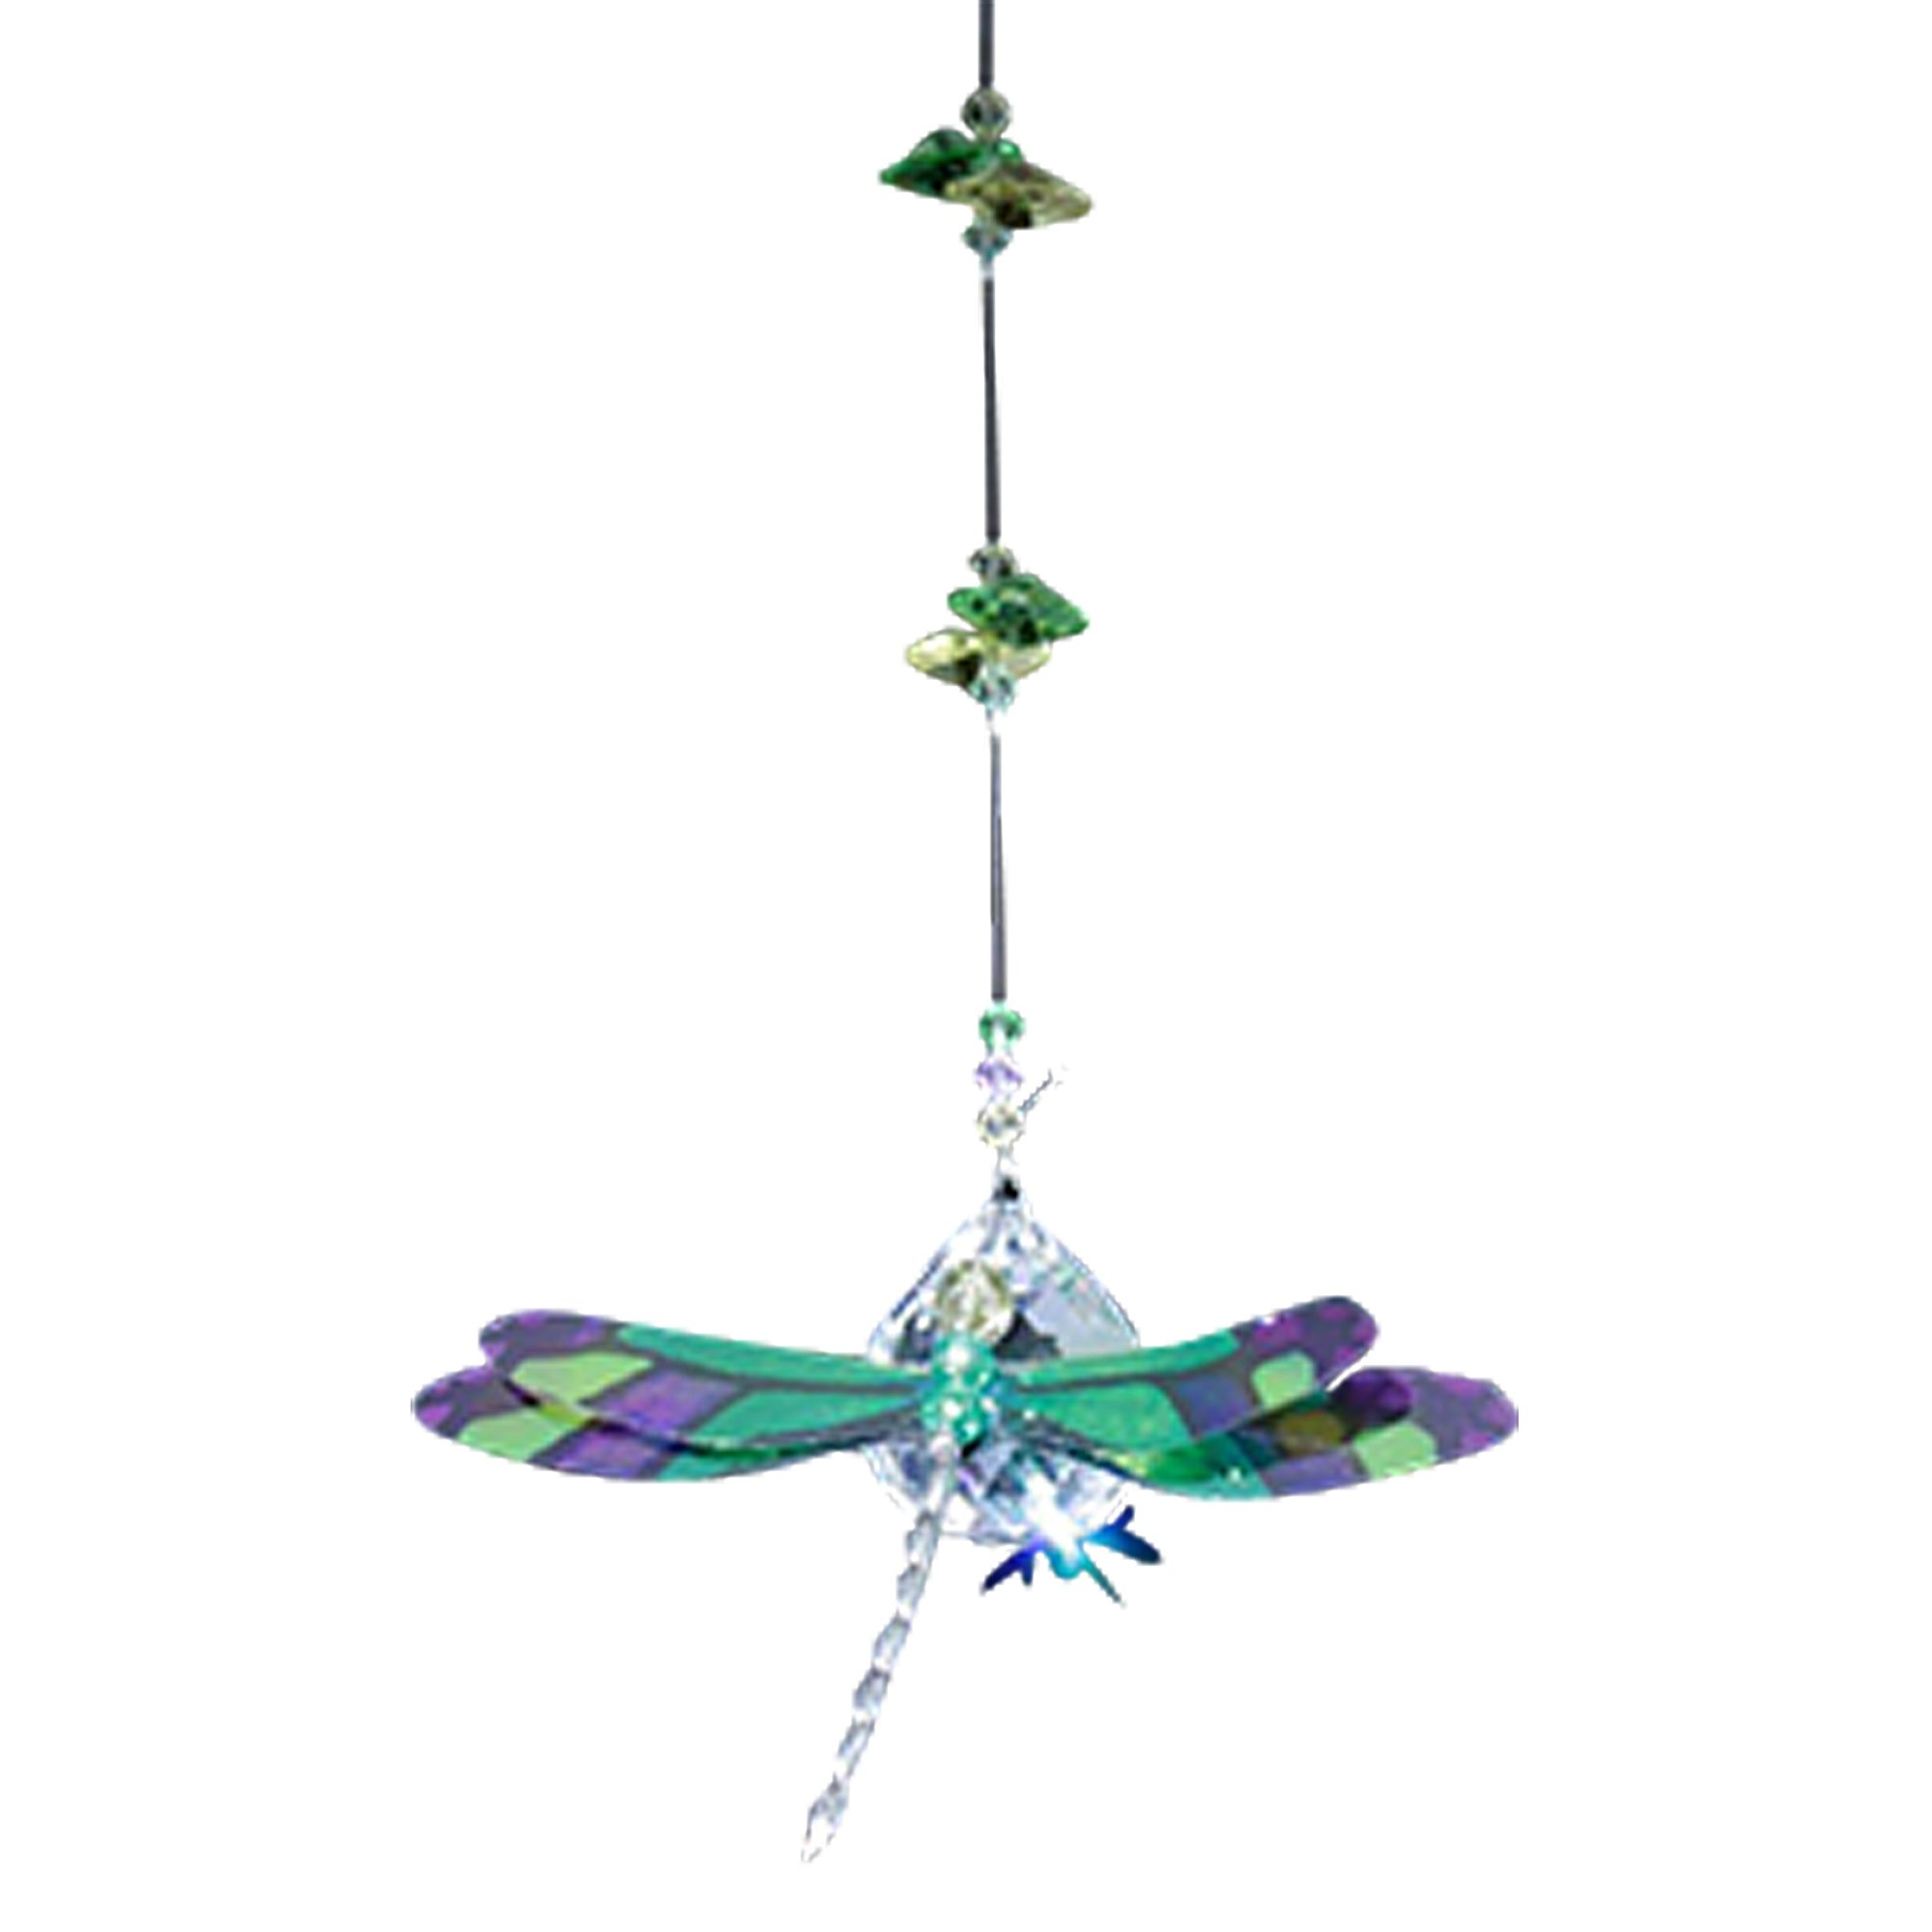 Dragonfly Figurine in Green & Purple with 30mm Crystal Clear Ball Bead - Rainbow Maker - Crystal Suncatcher - Home, Living Room, Bedroom, Kitchen, Car Decoration - Porch Decor - Sun Catcher - Hangings Crystal Glass Ornament